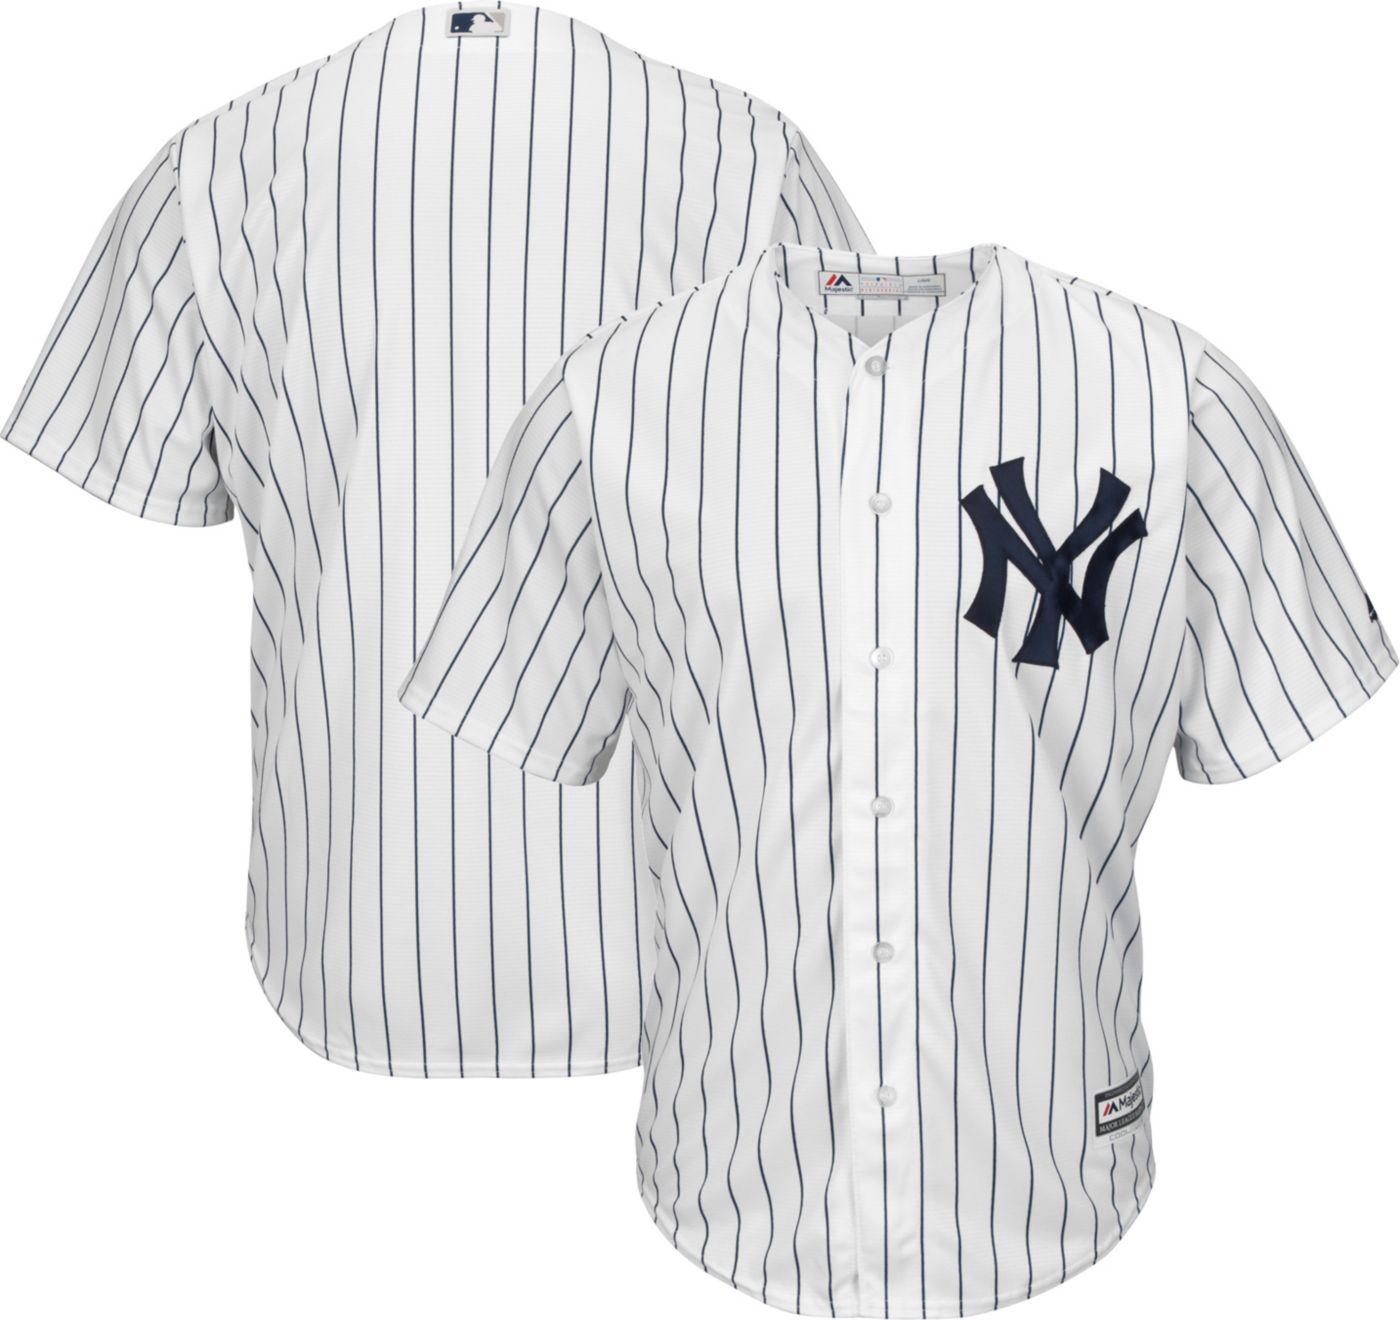 Majestic Men's Replica New York Yankees Cool Base Home White Jersey